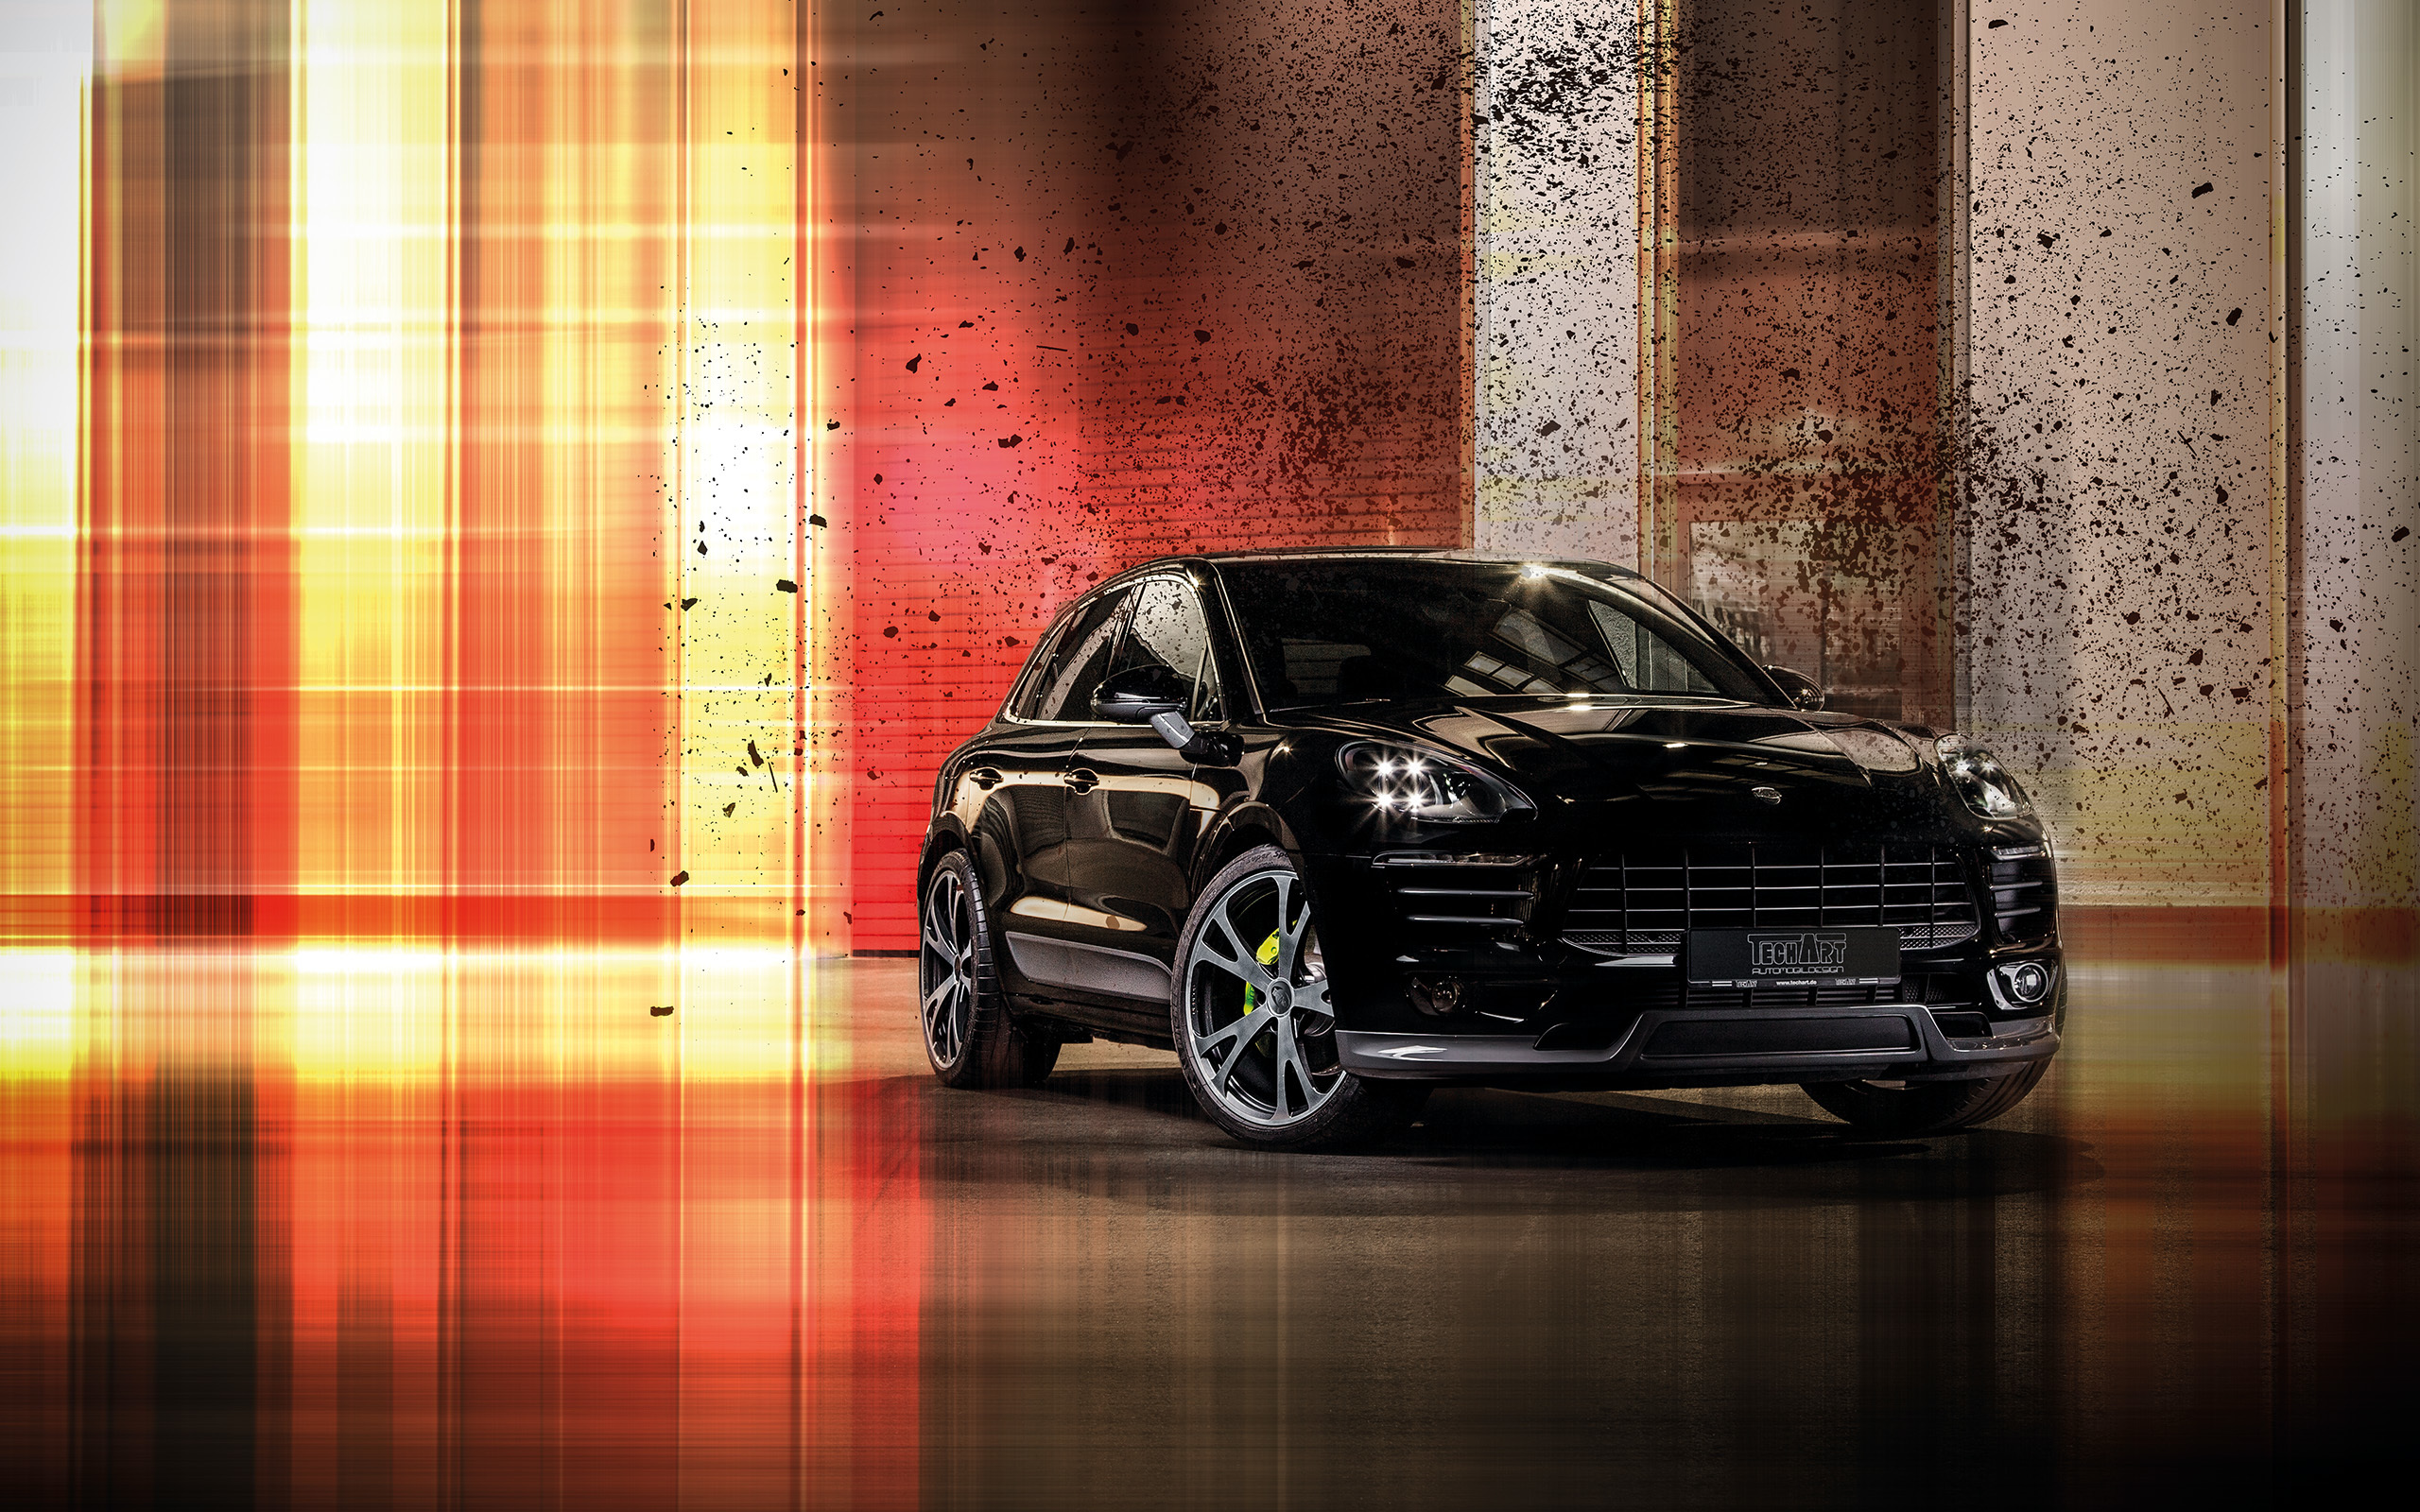 Lamborghini Cars Wallpapers 2013 Porsche Macan 2015 Wallpaper Hd Car Wallpapers Id 5756